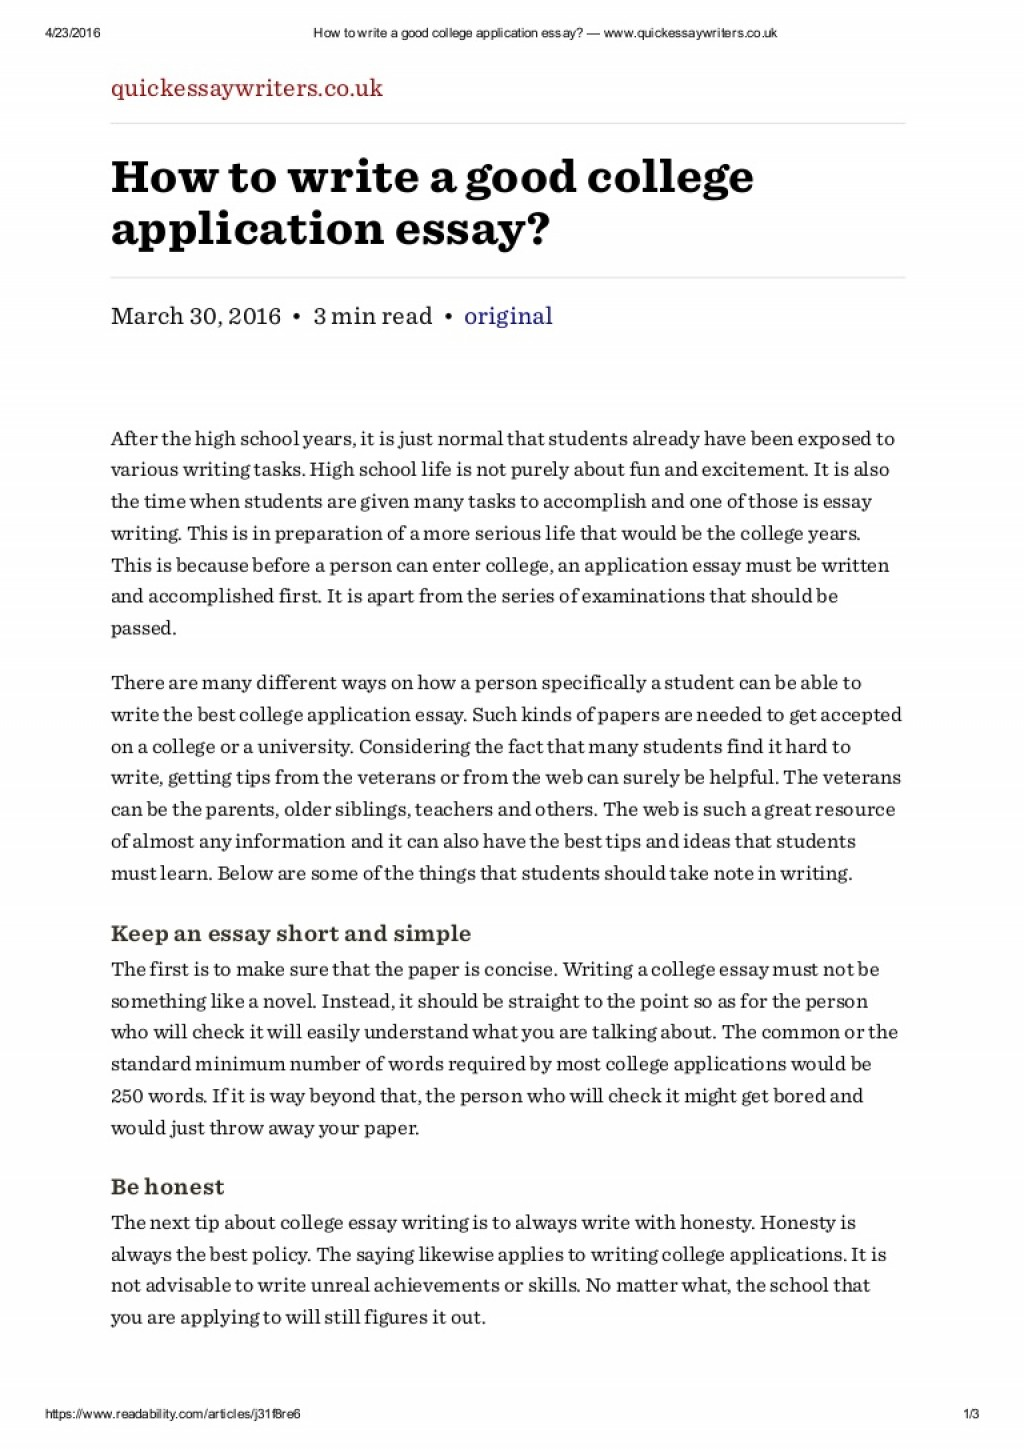 001 Essay Example What Not To Write About In Frightening College Things Your Admissions Large